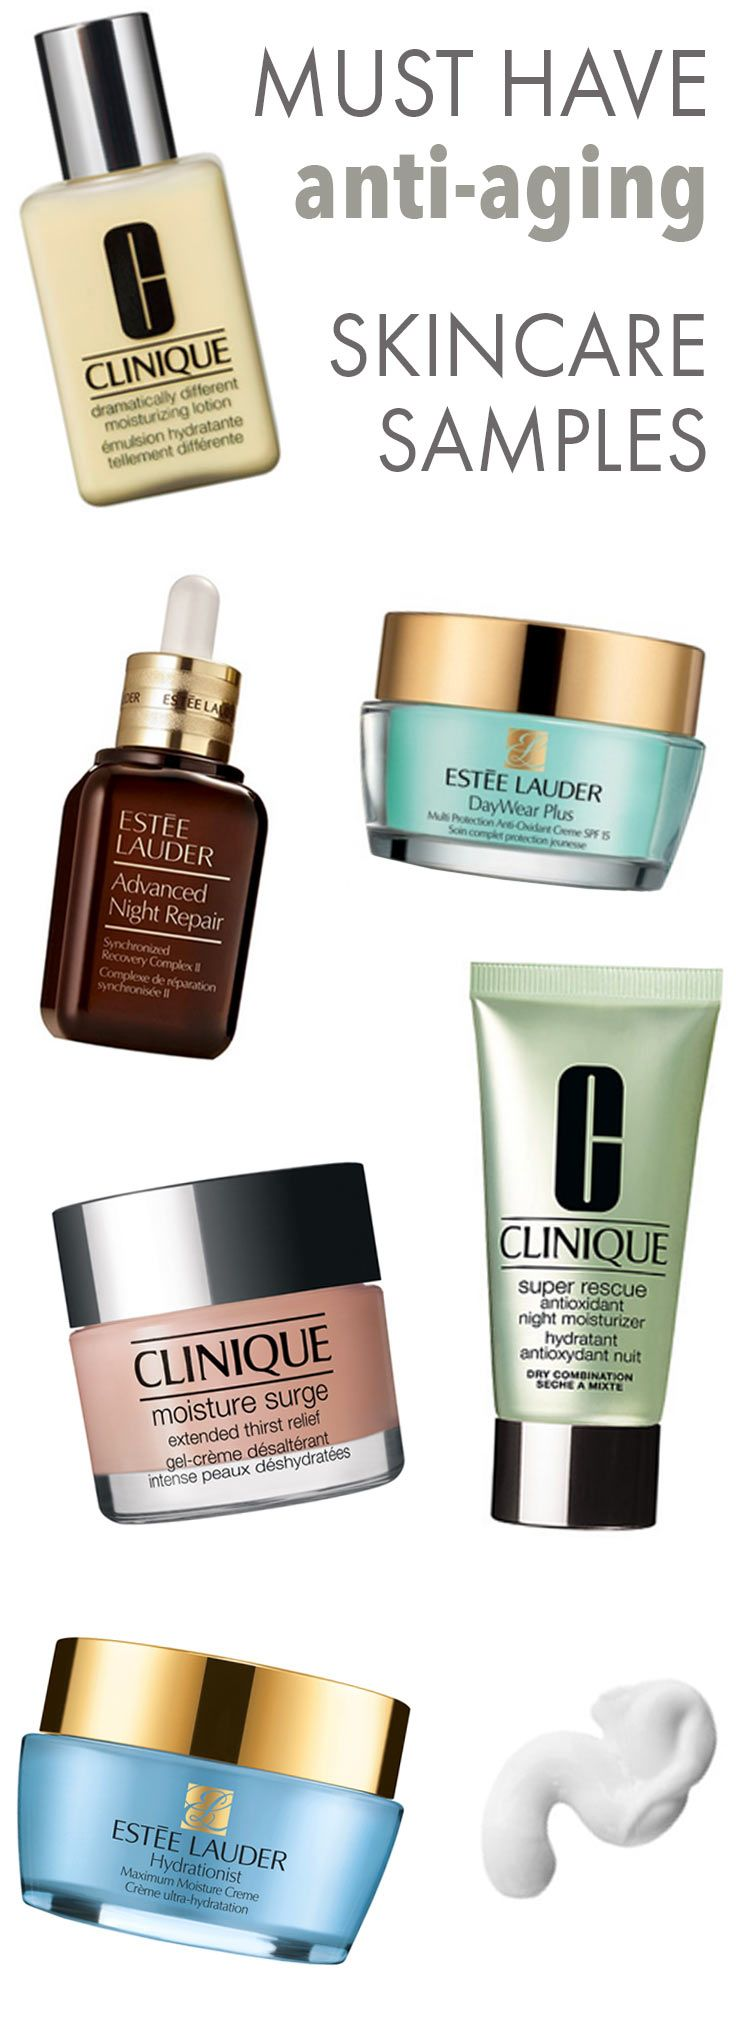 Free Skincare Samples for Top AntiAging Wrinkle Cream